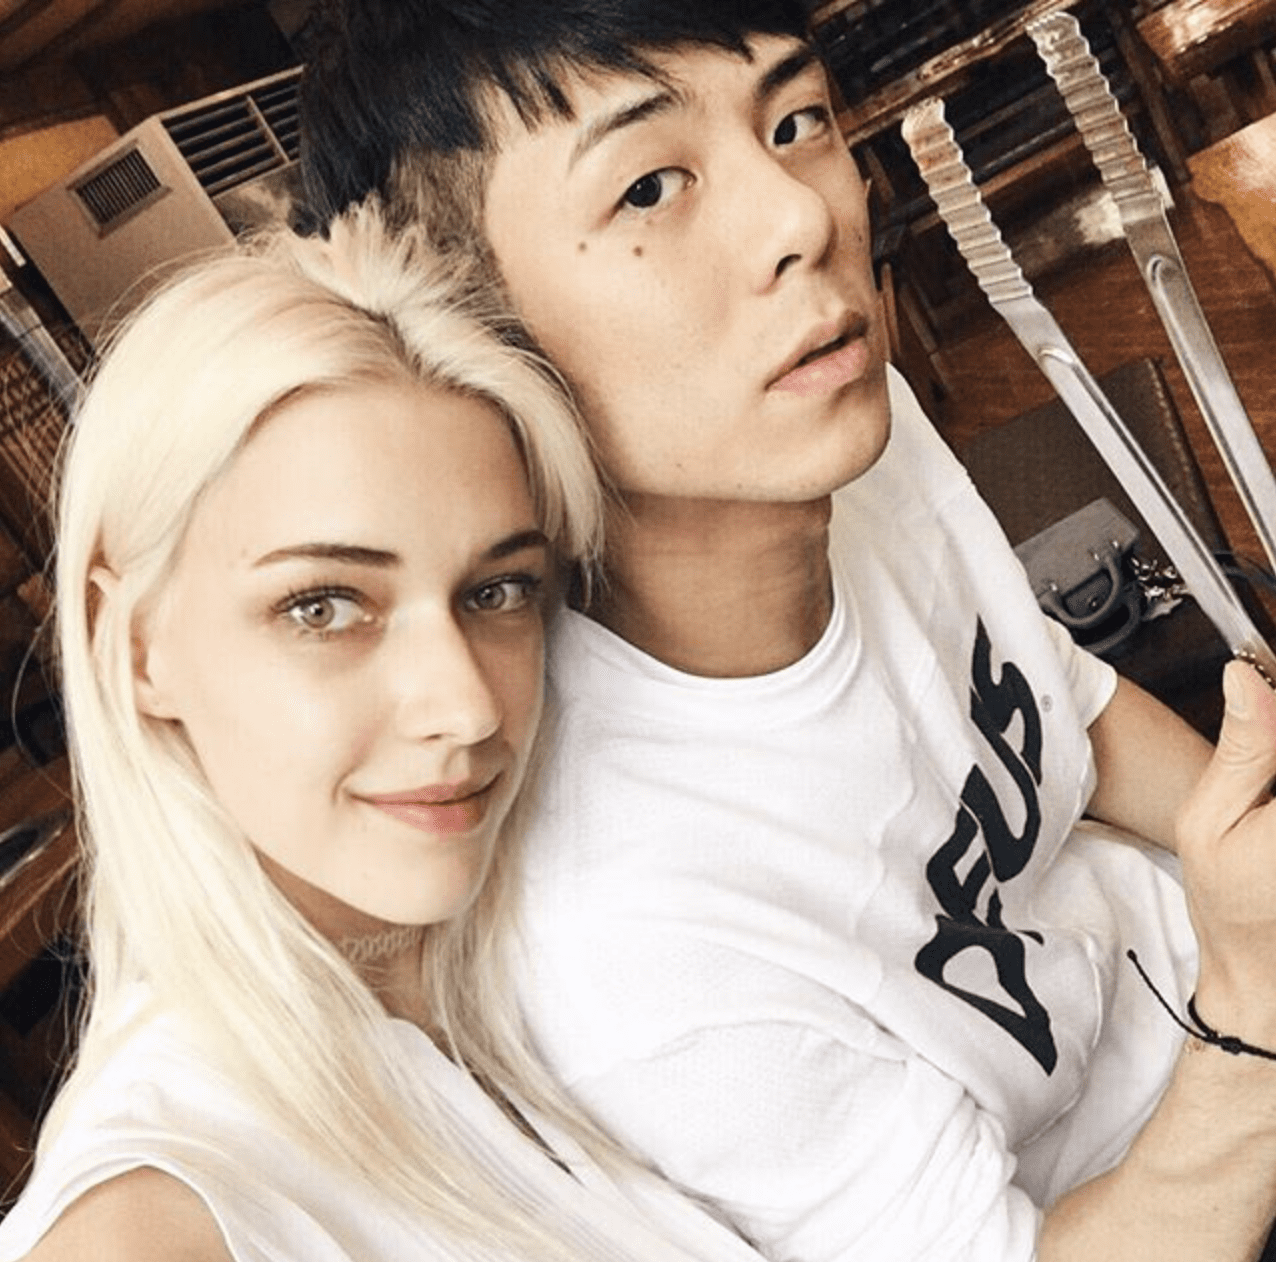 Beenzino Sends Unique Gift To Girlfriend Stefanie Michova From The Army